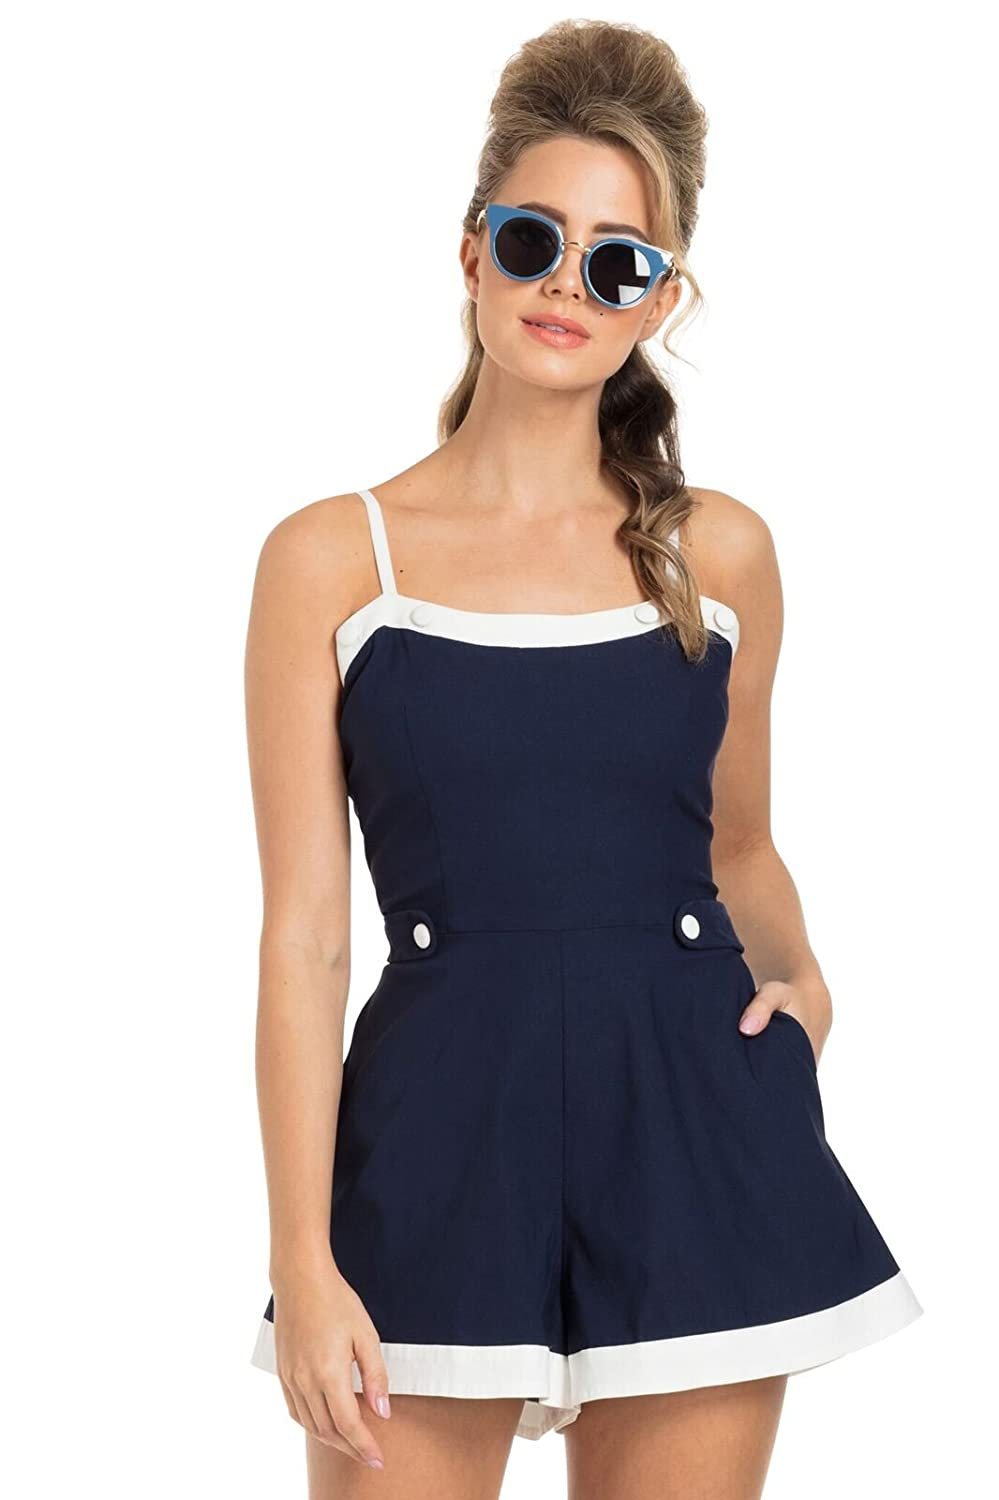 Vintage Cruise Outfits, Vacation Clothing Voodoo Vixen Nicola Nautical Retro 50s Playsuit $54.99 AT vintagedancer.com